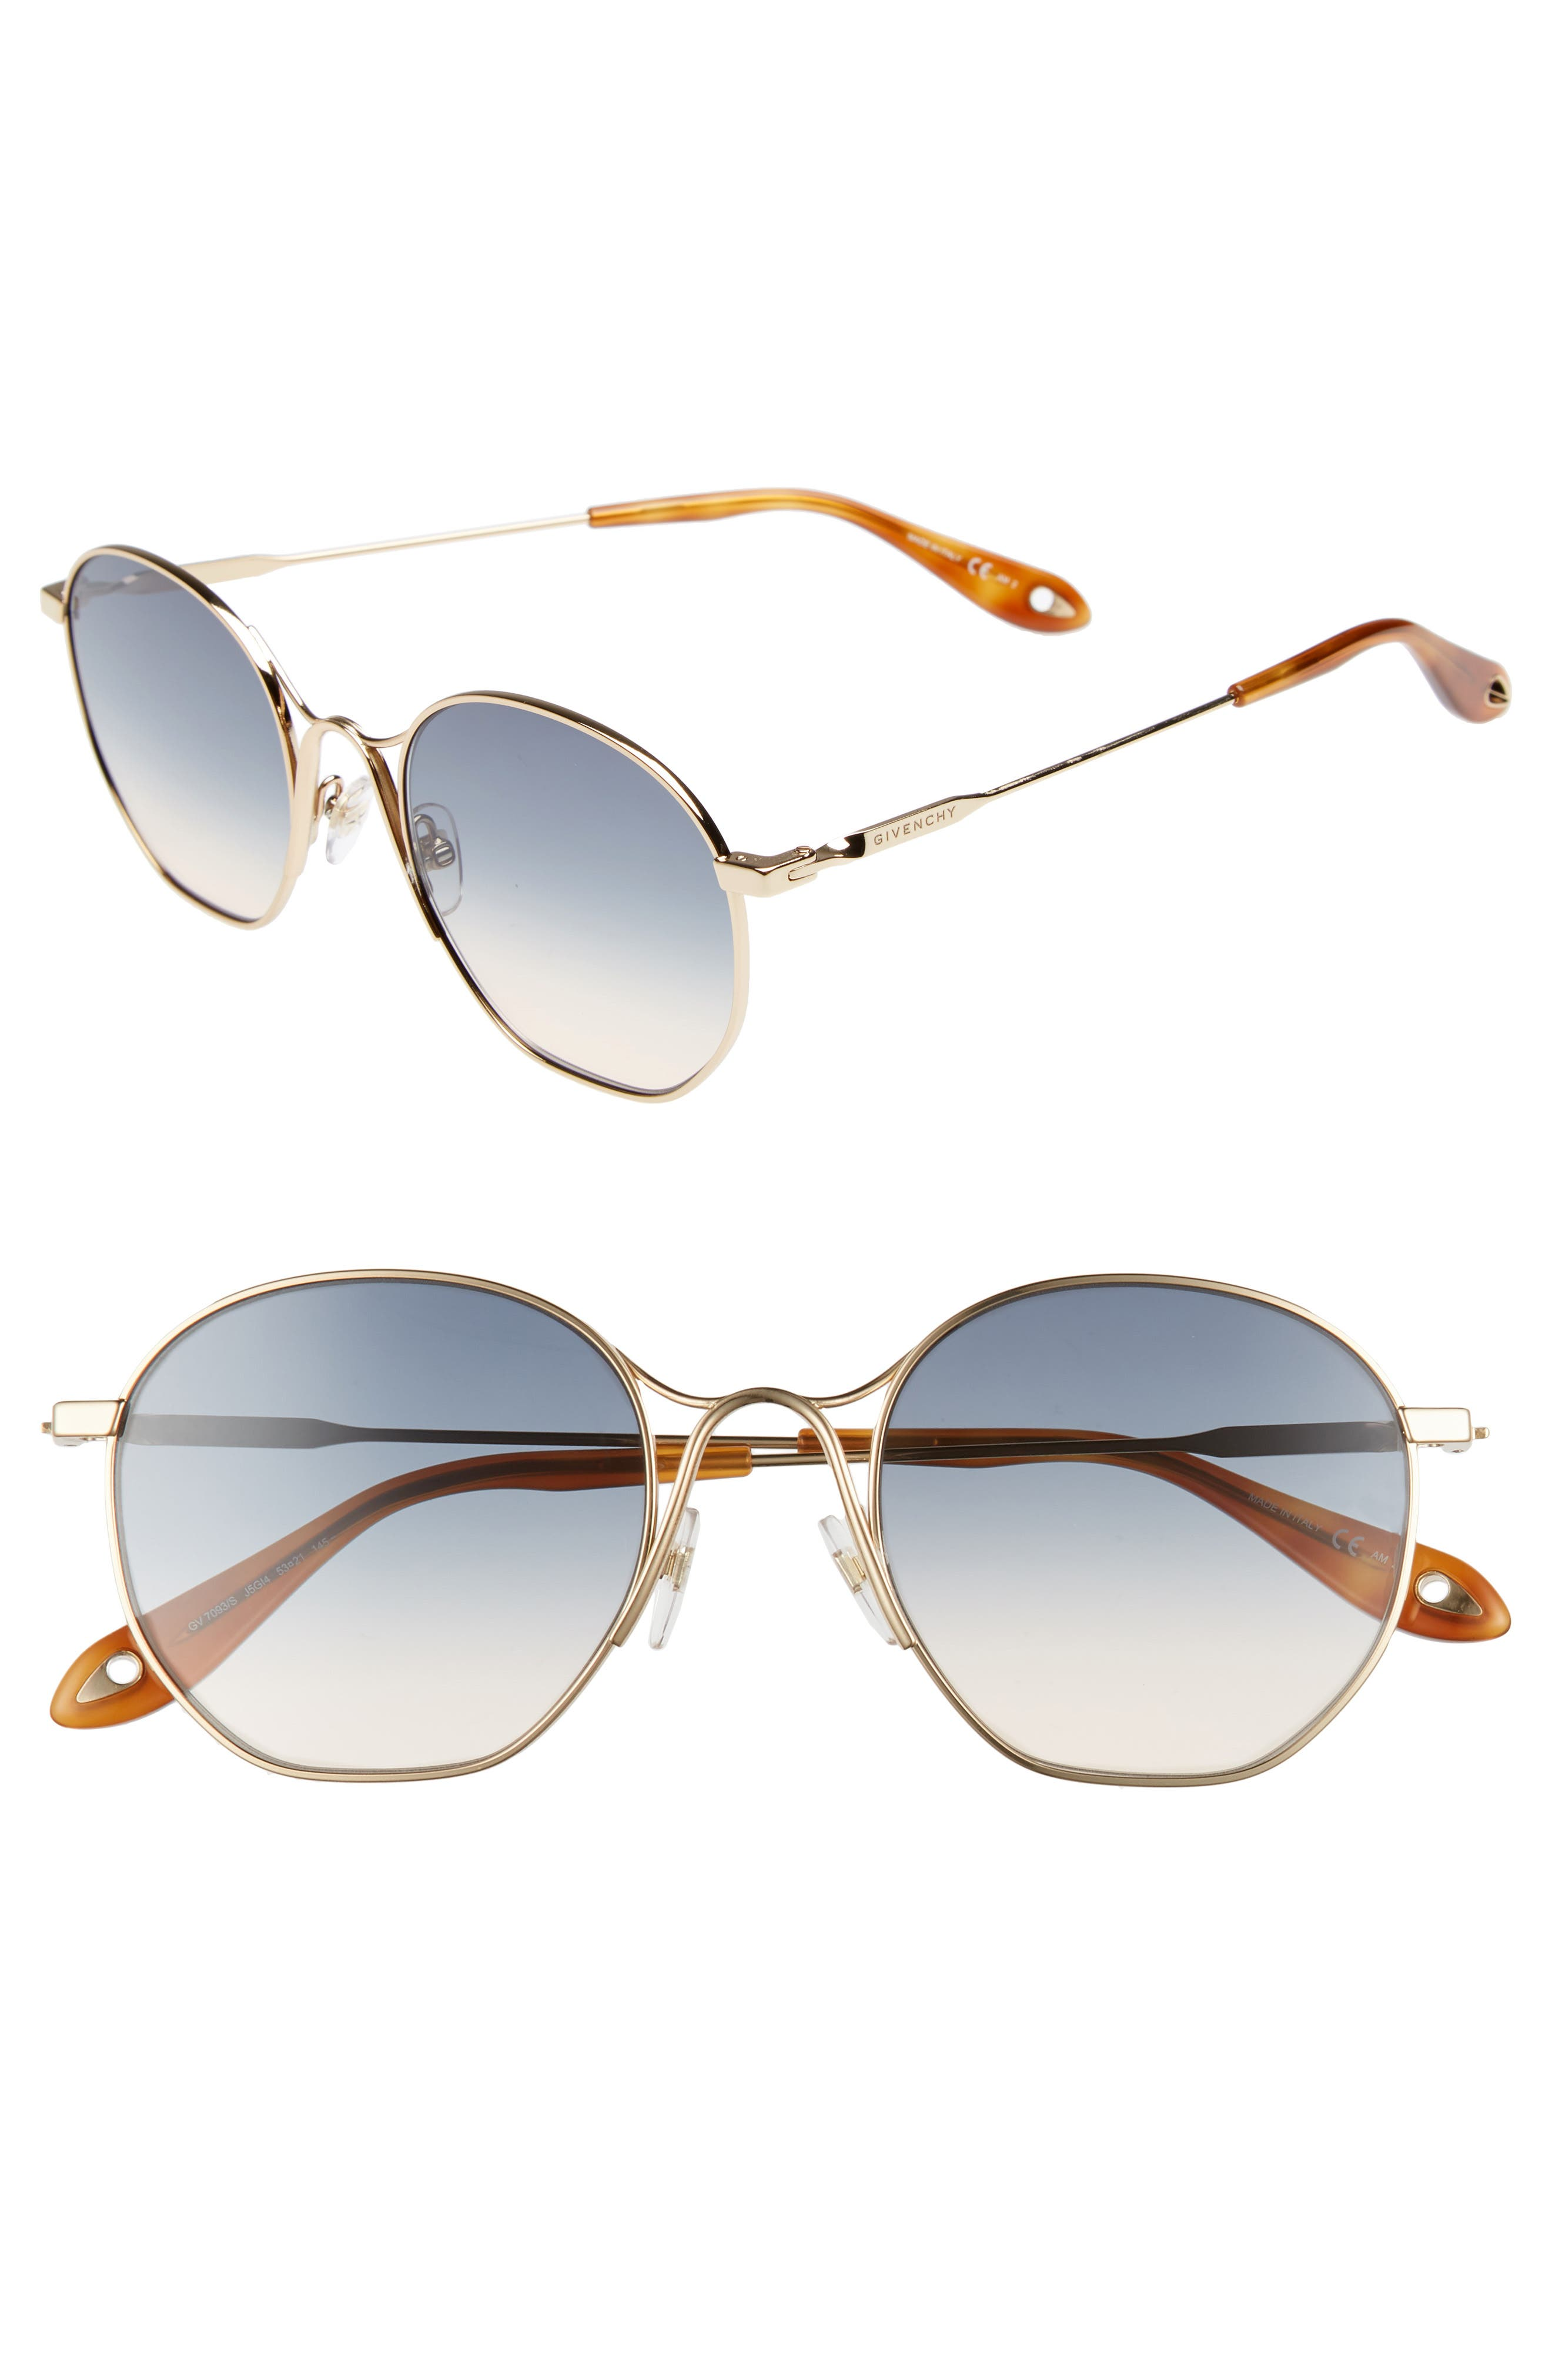 53mm Squared Round Metal Sunglasses,                             Main thumbnail 1, color,                             GOLD